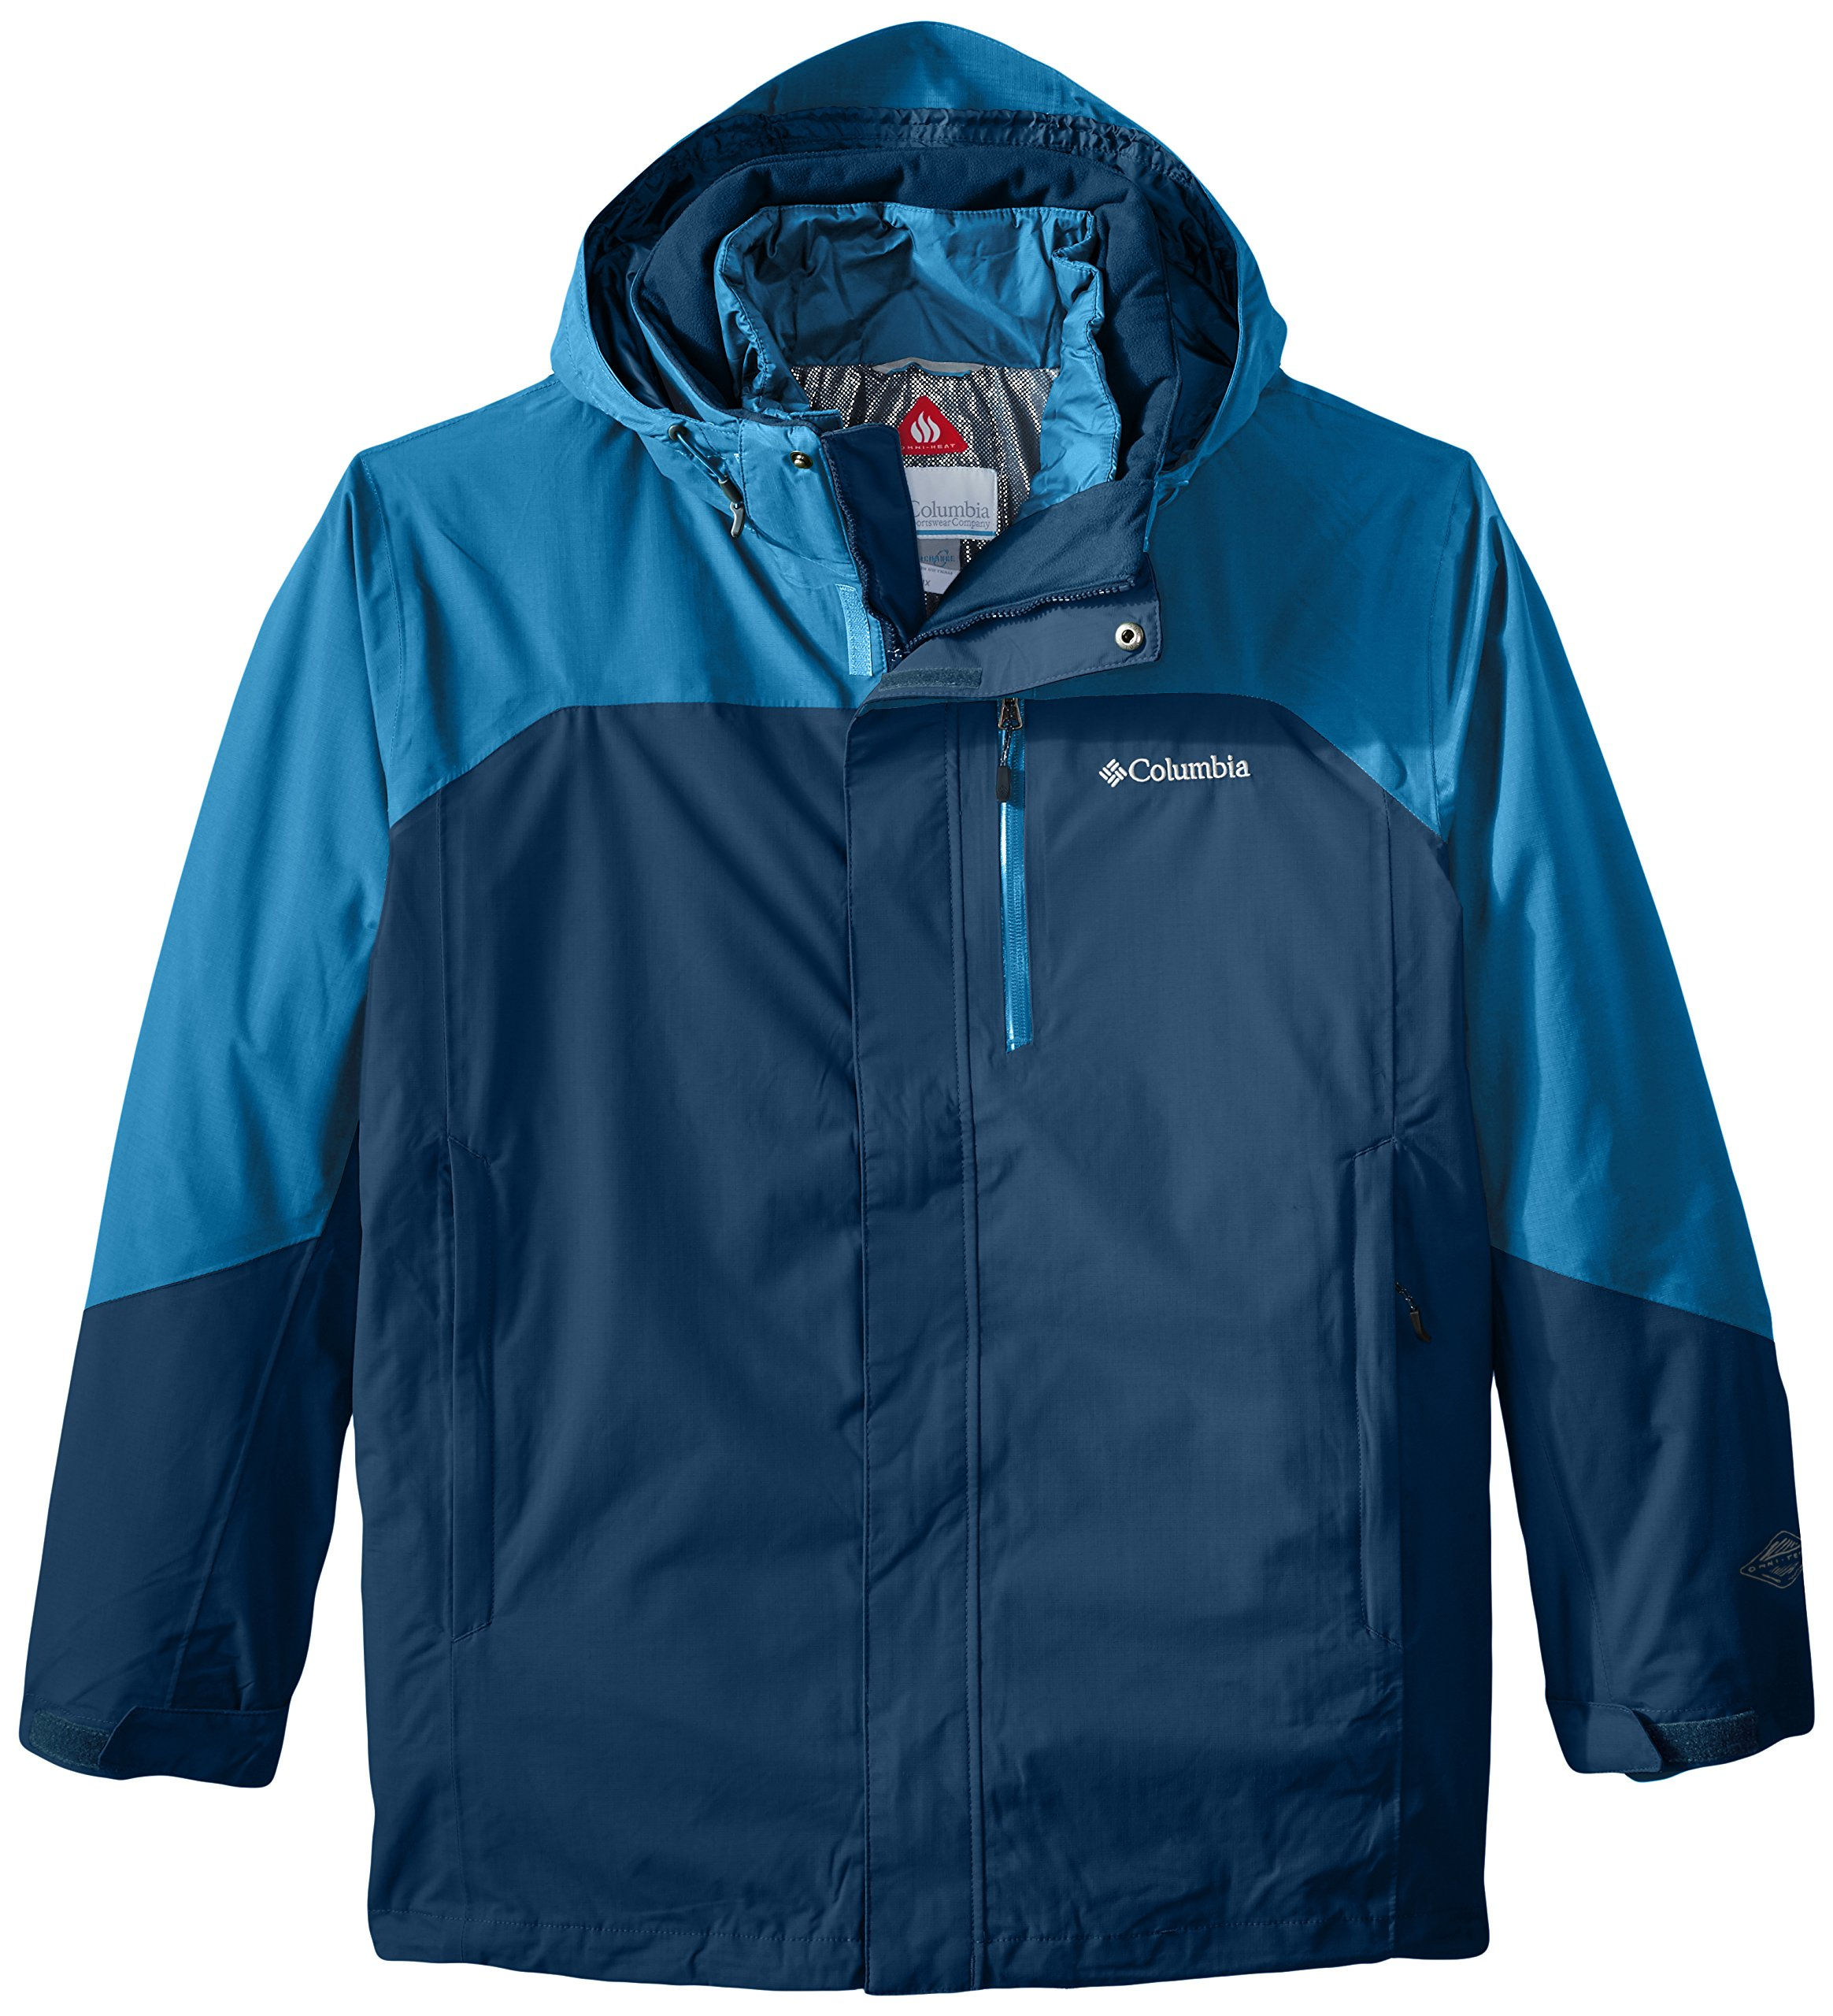 Columbia Men's Big-Tall Lhotse II Interchange Jacket, 1X, Phoenix Blue/Dark Compass by Columbia